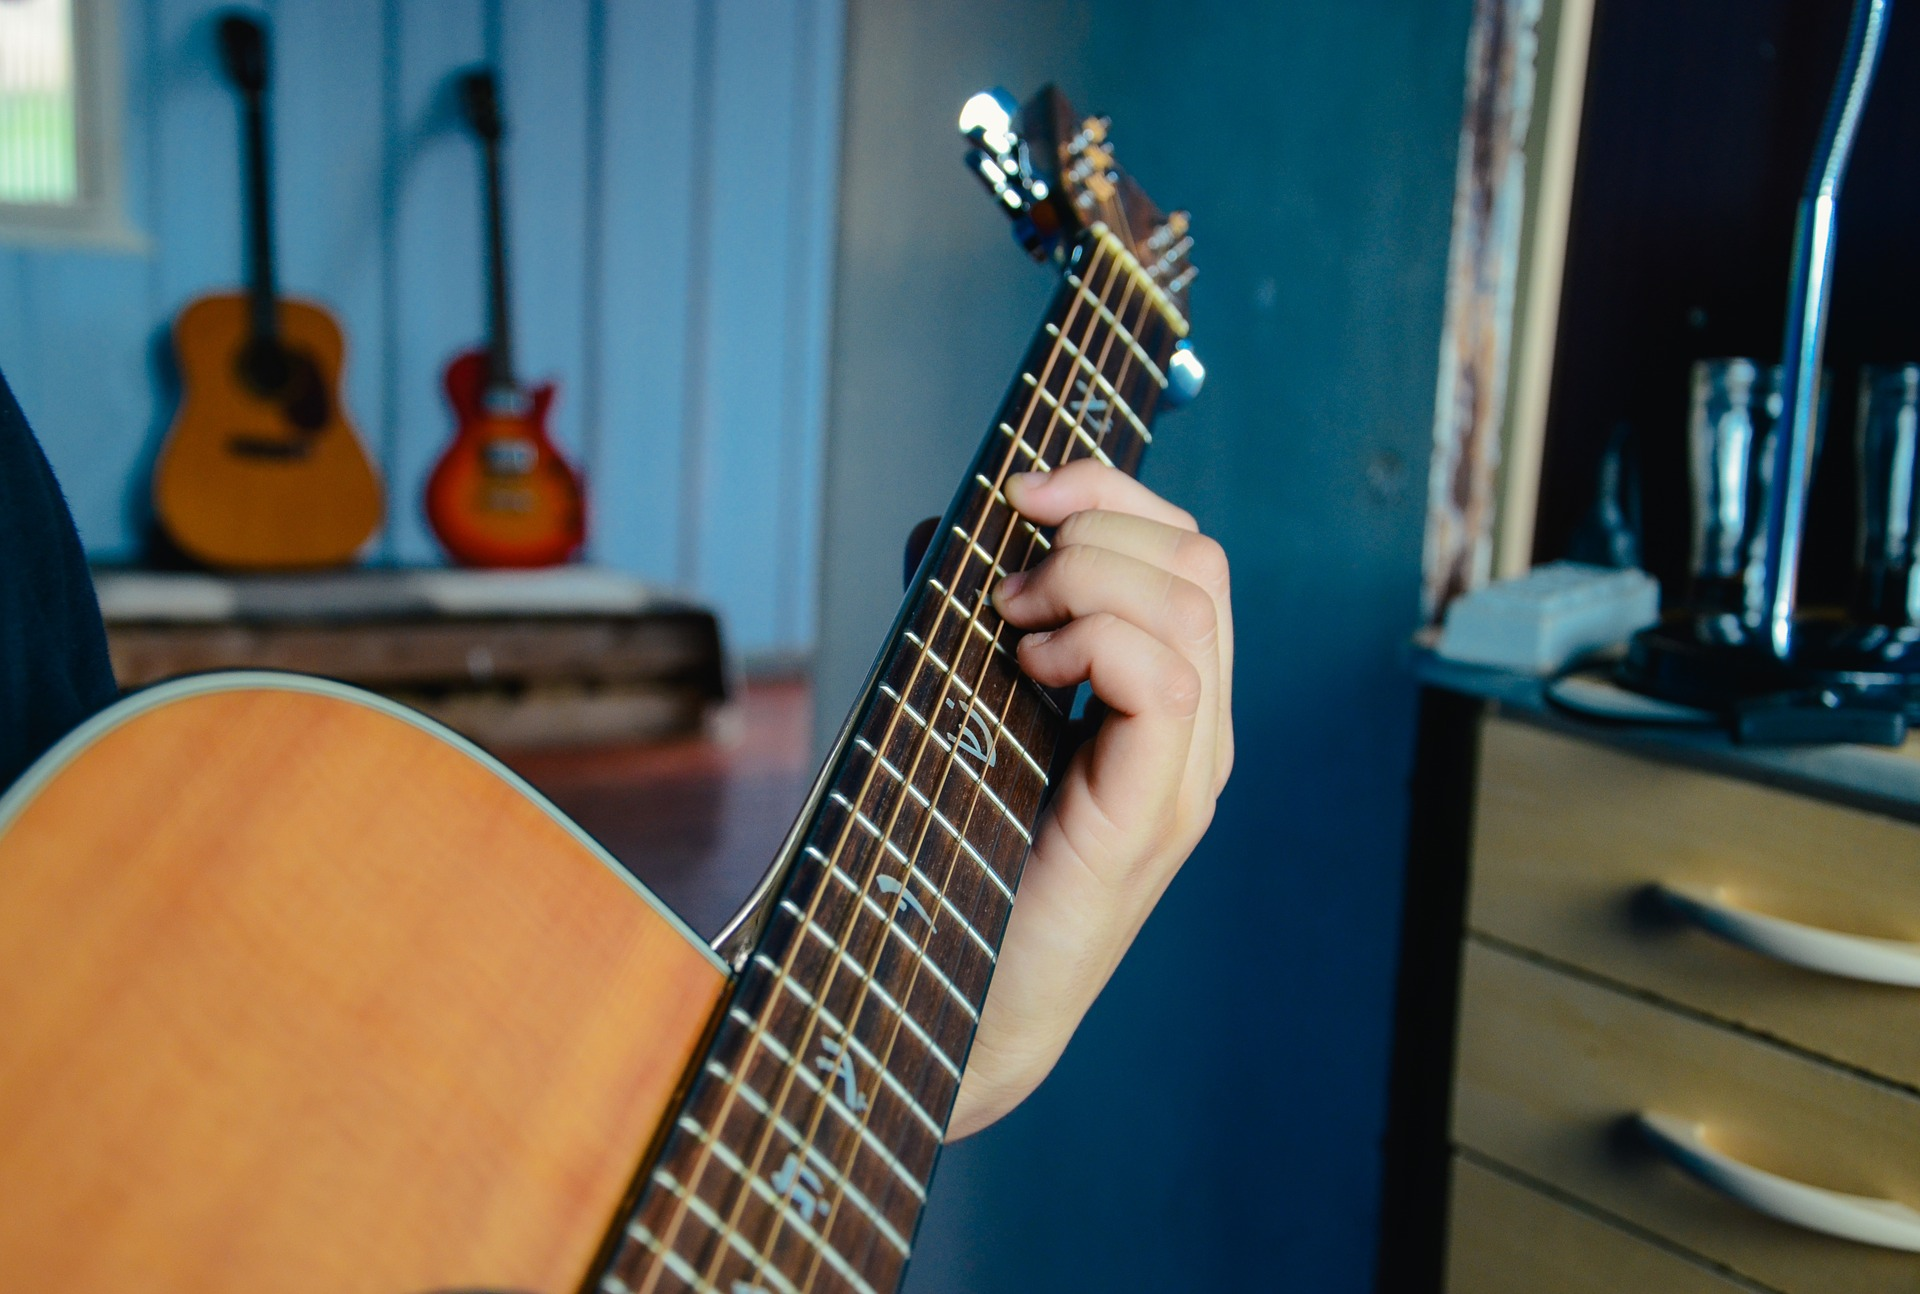 Extended Guitar Chords: How to play the 9th, 11th, and ...